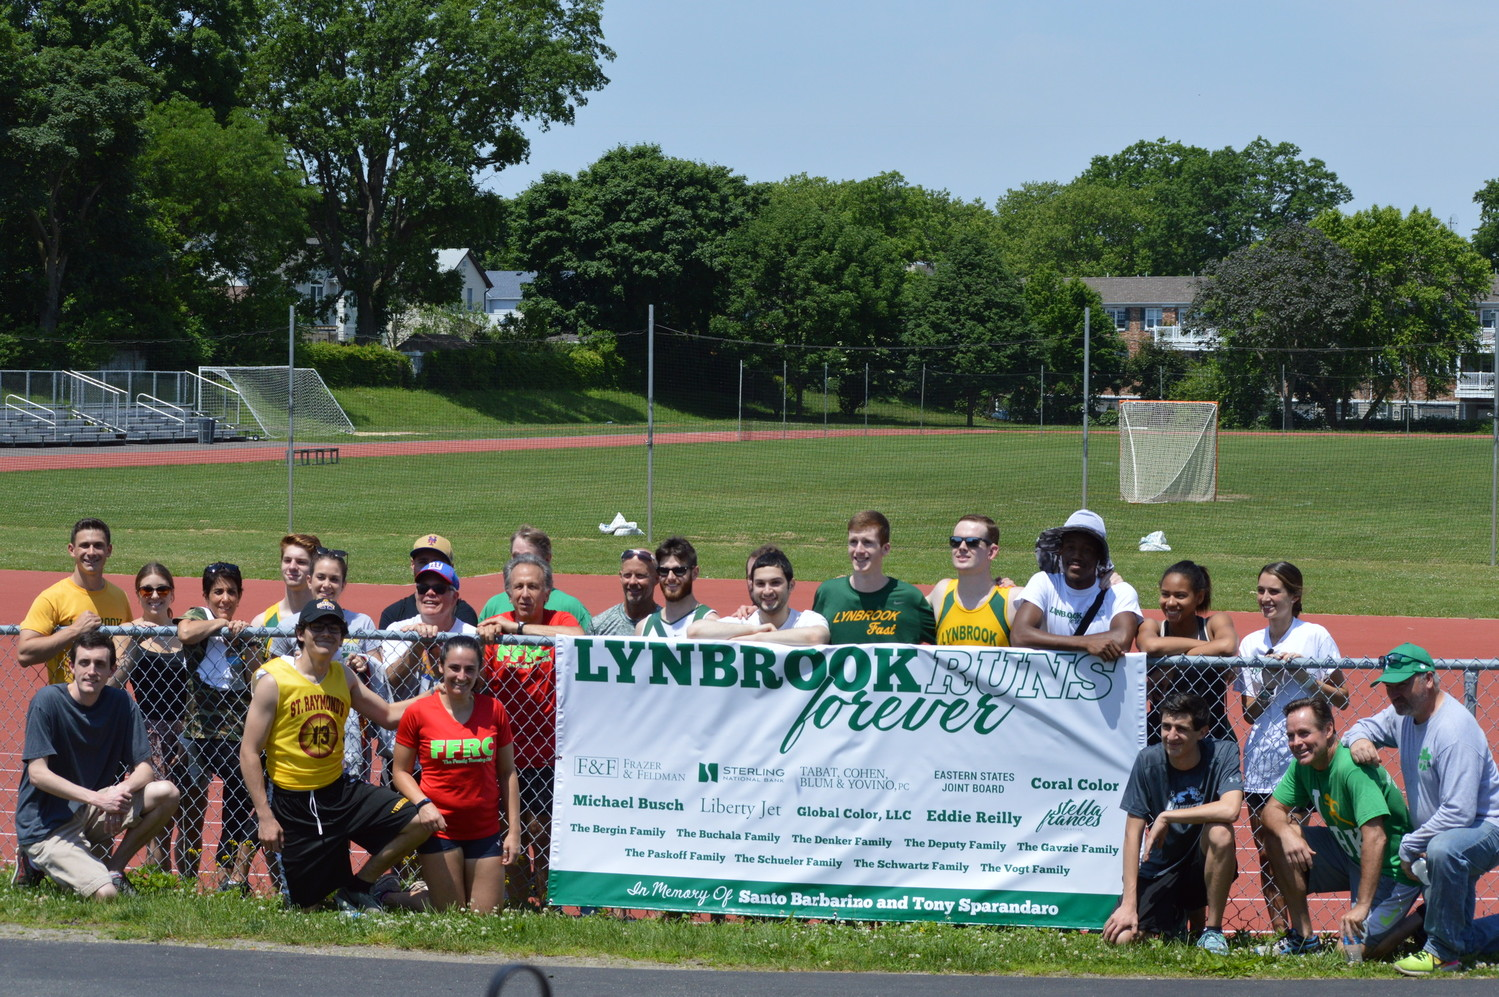 The inaugural Lynbrook alumni track meet was held on June 9 at South Middle School and raised $2,000, which will go toward scholarships for students on the track and cross country teams.